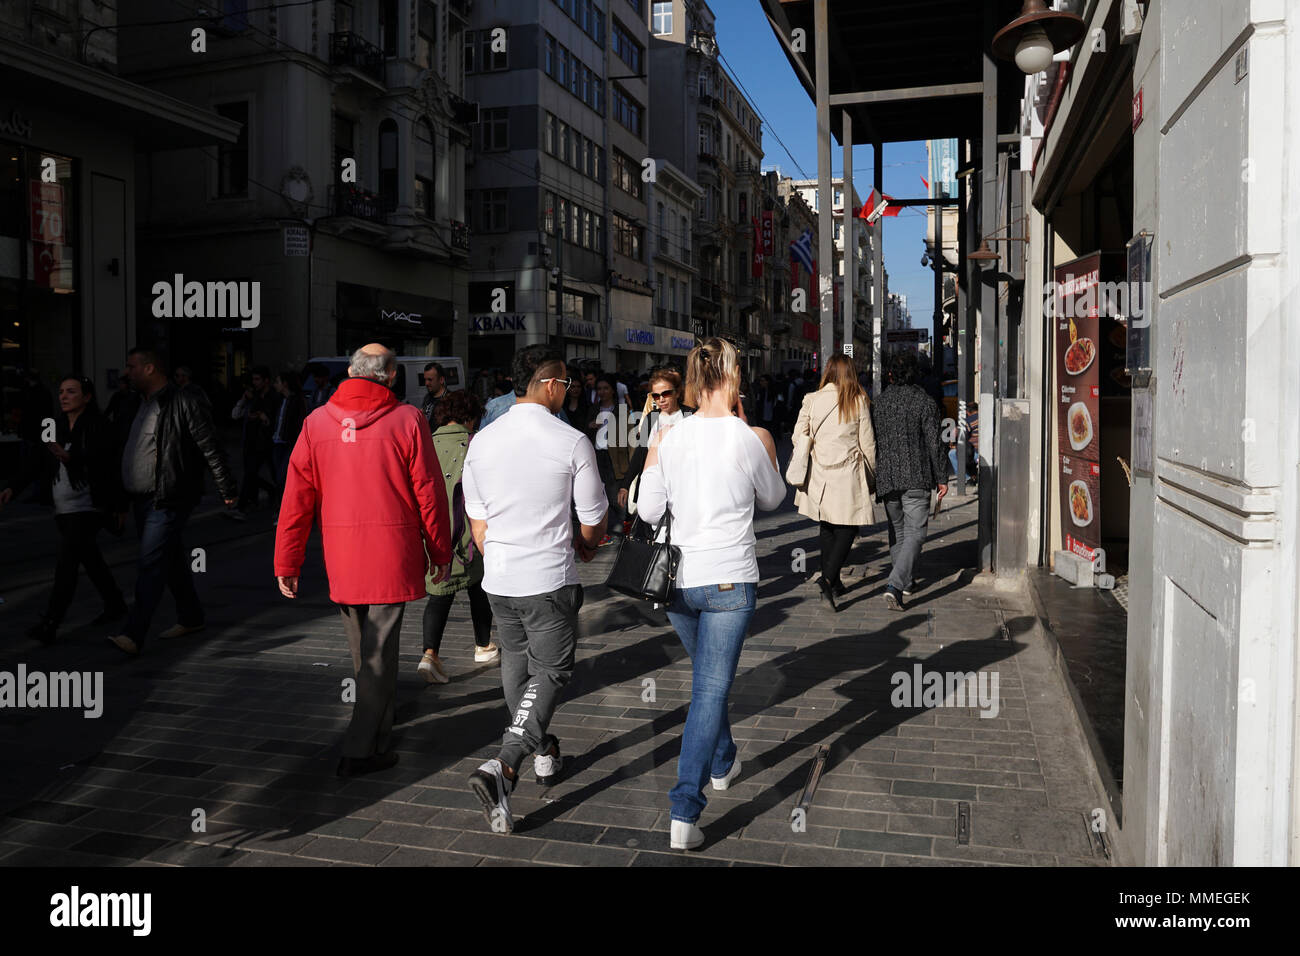 Istanbul, Turkey - April 19, 2018: Turkish people and  tourists are walking at The Istiklal Street, Beyoglu in a sunny springtime day. There are many Stock Photo